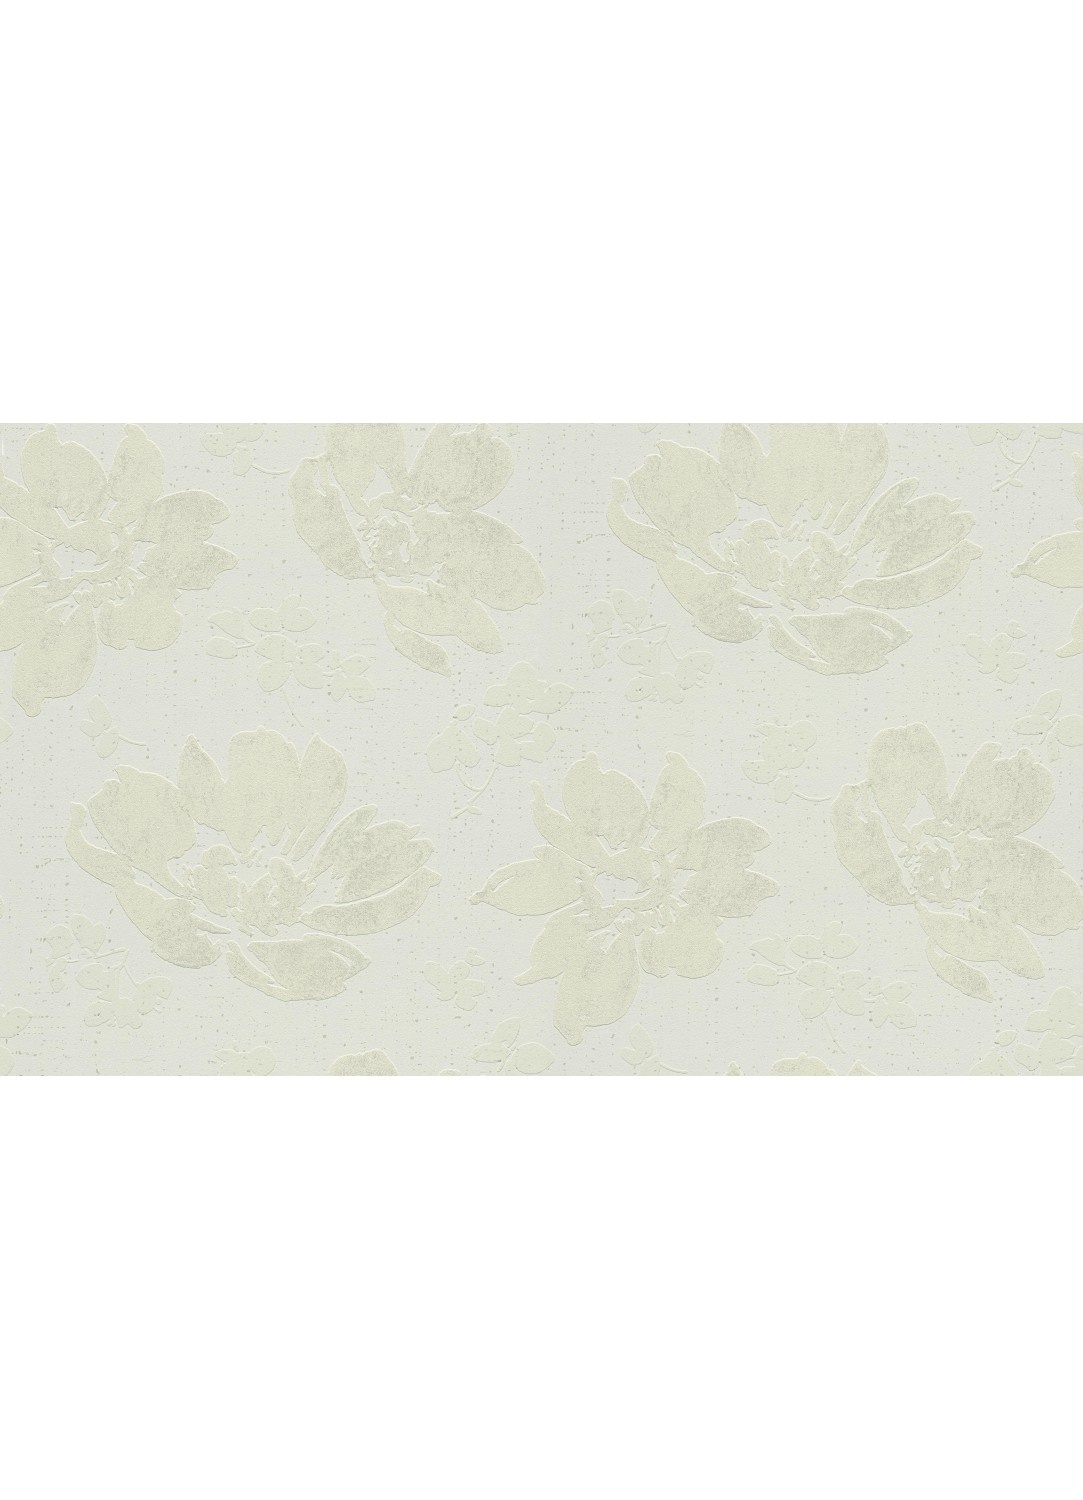 papier peint motif pivoines en relief blanc beige. Black Bedroom Furniture Sets. Home Design Ideas